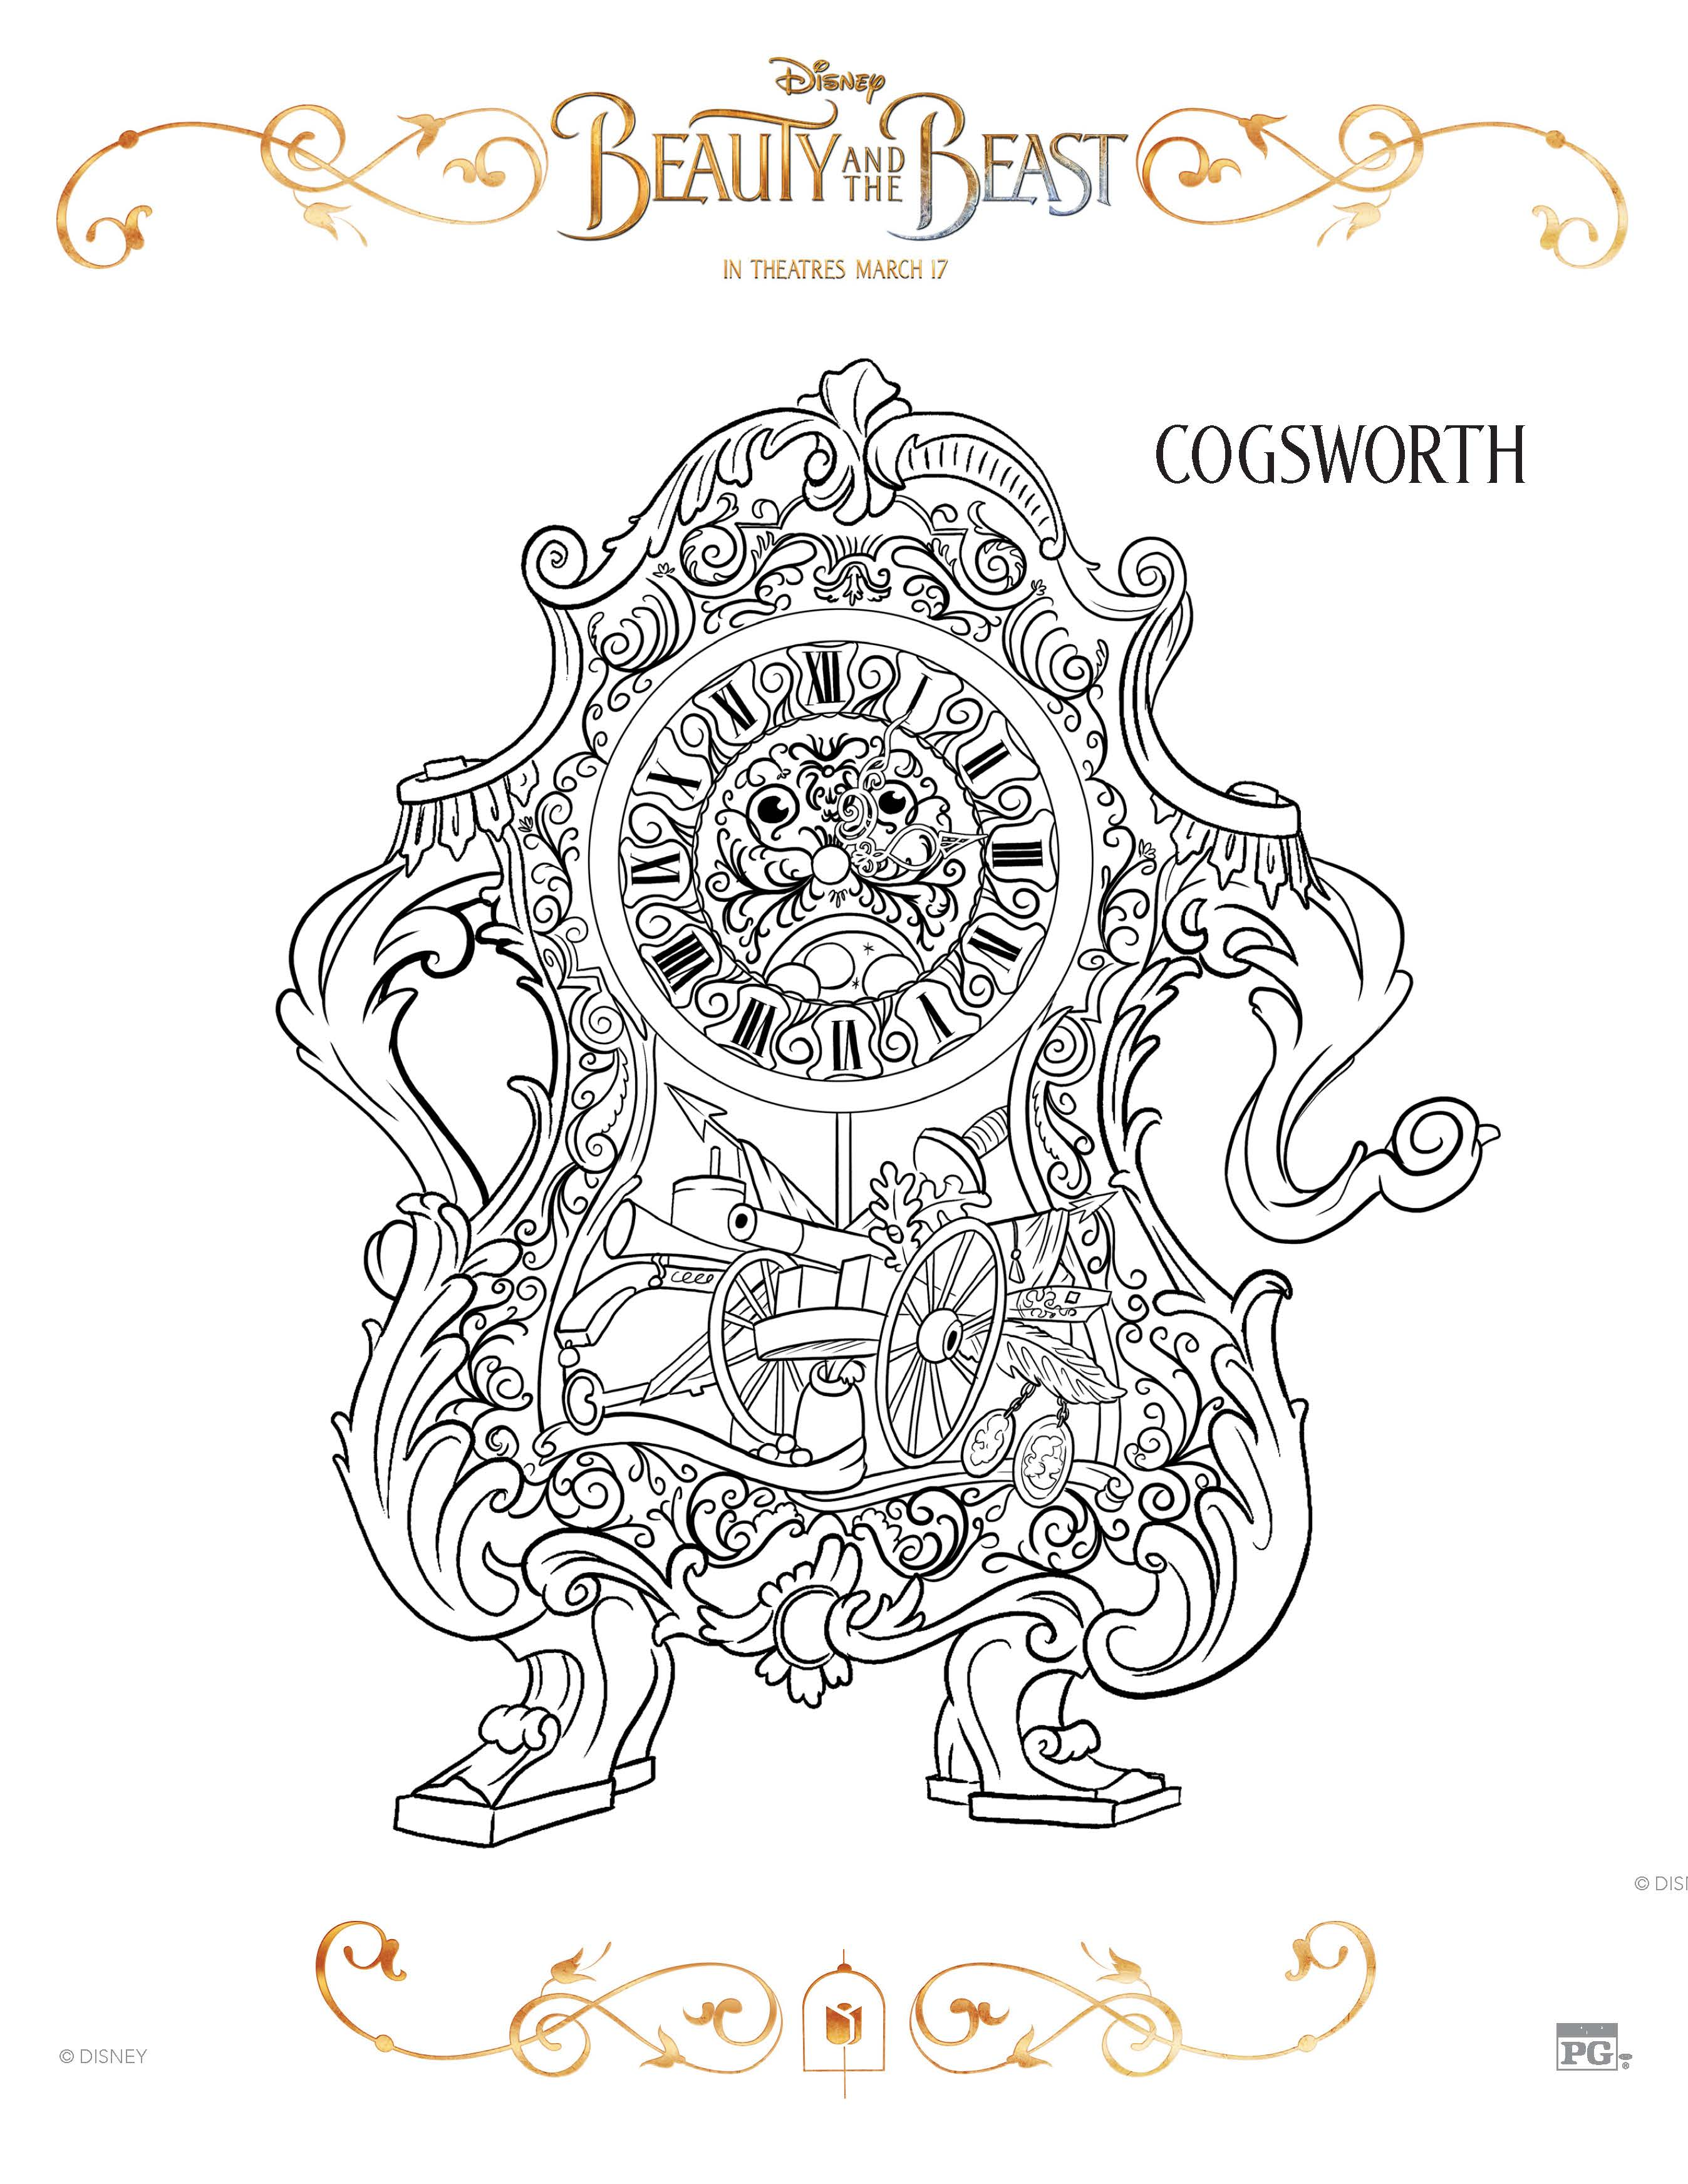 Beauty and the Beast free coloring sheets